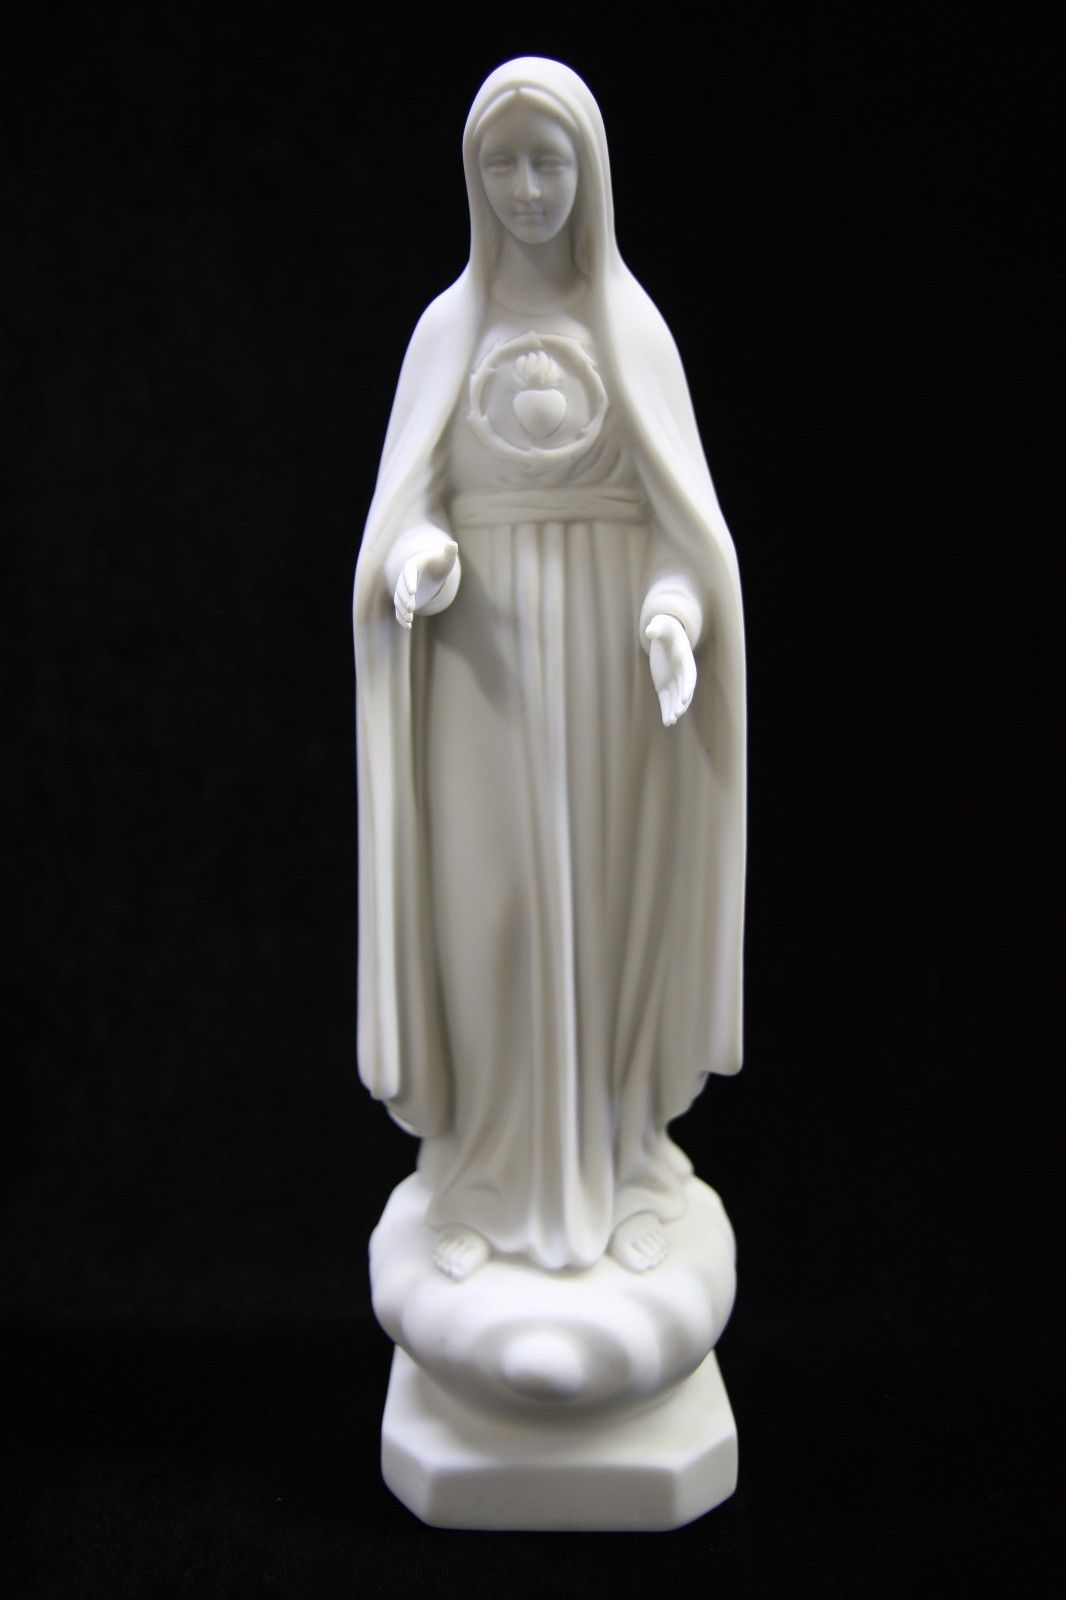 Our Lady of Fatima Pilgrim Virgin Mary Catholic Religious Statue Made in Italy - $59.95